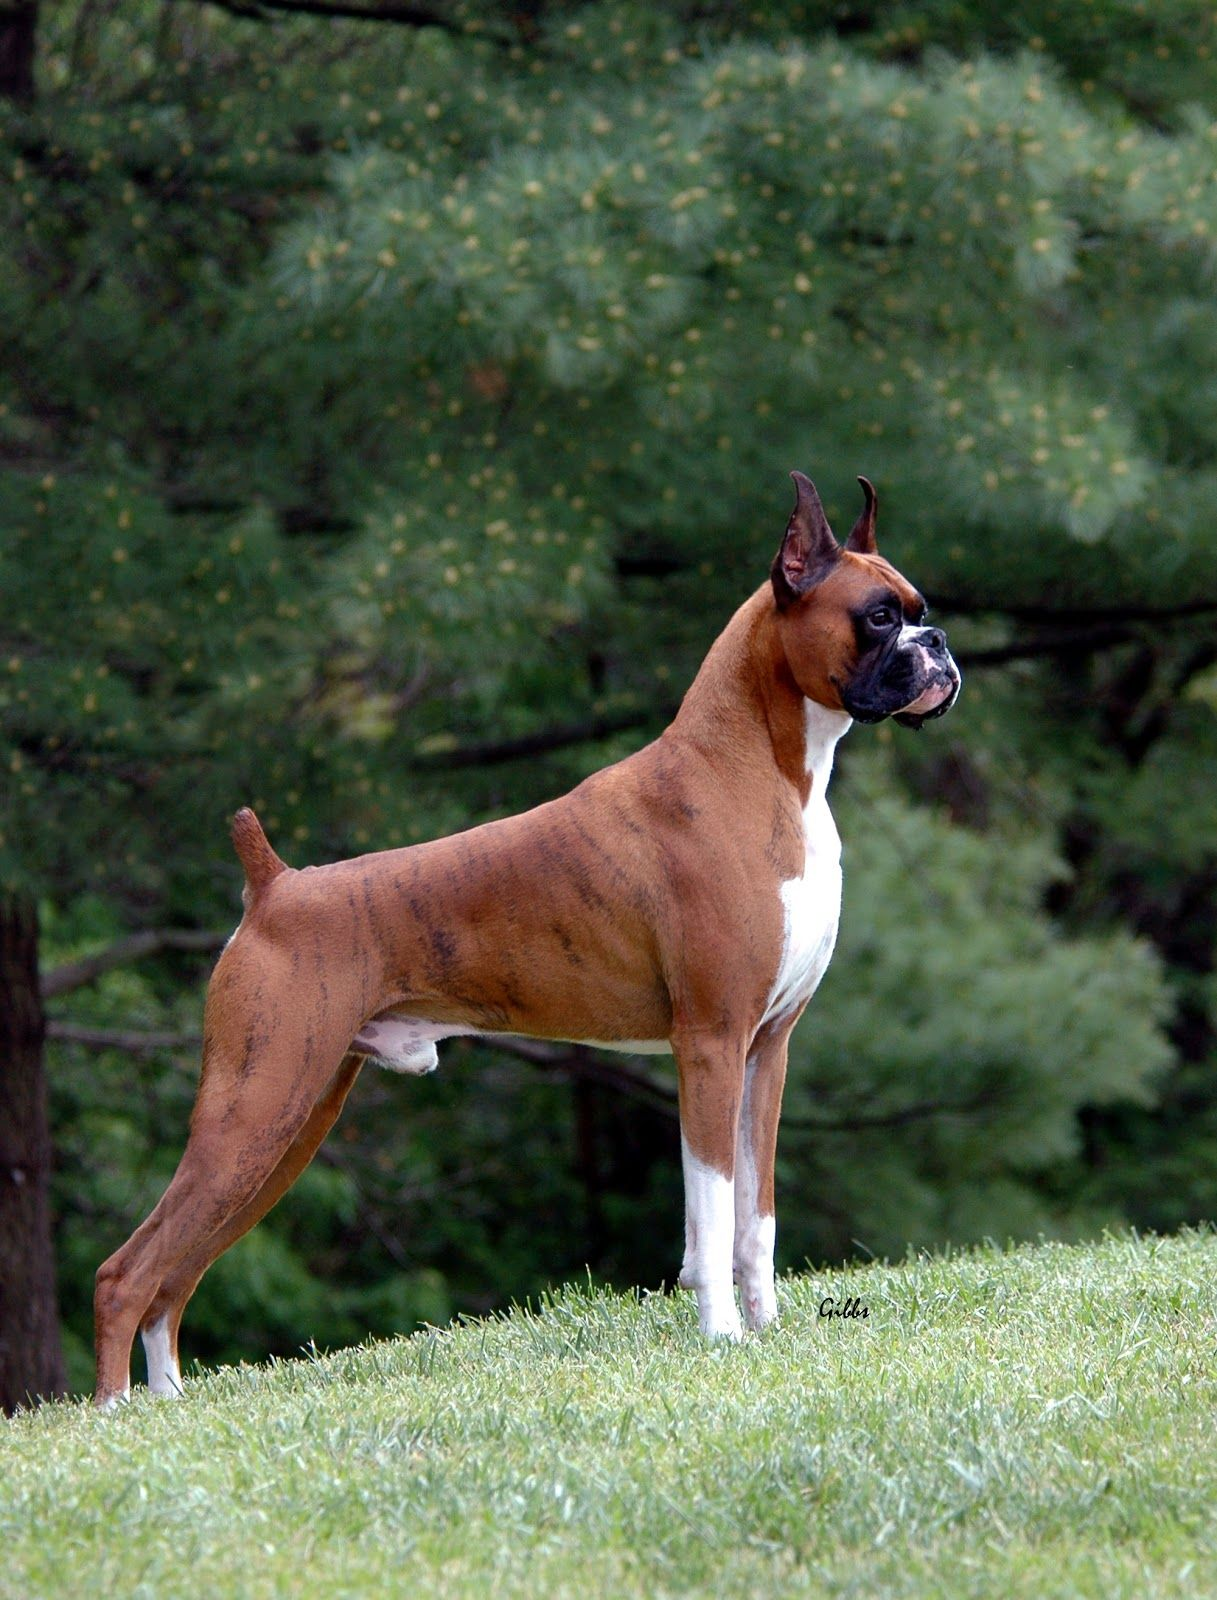 Occiput Dog Breeds